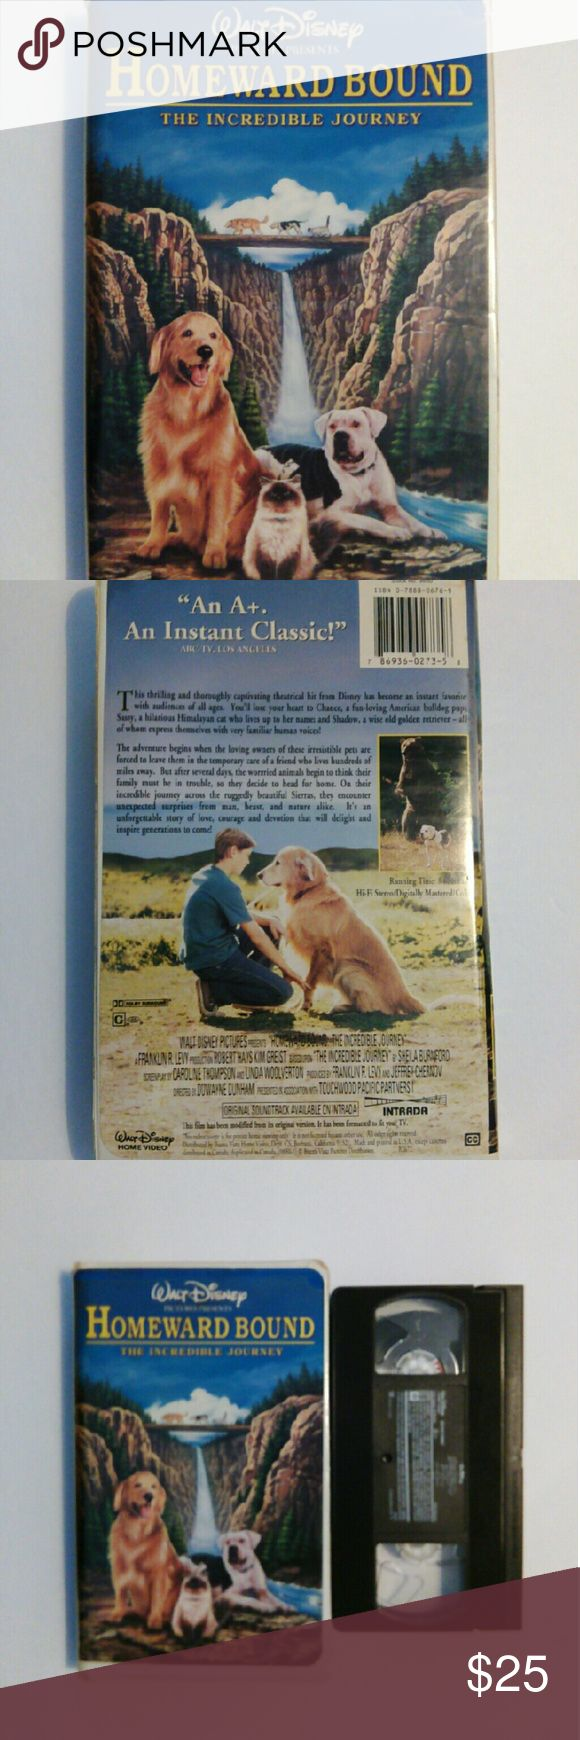 Disney Homeward Bound Vhs Thisvis a fantastic collector's item for the Disney lover. Has been cleaned, tested and rewound. Plays great from beginning to end. Other